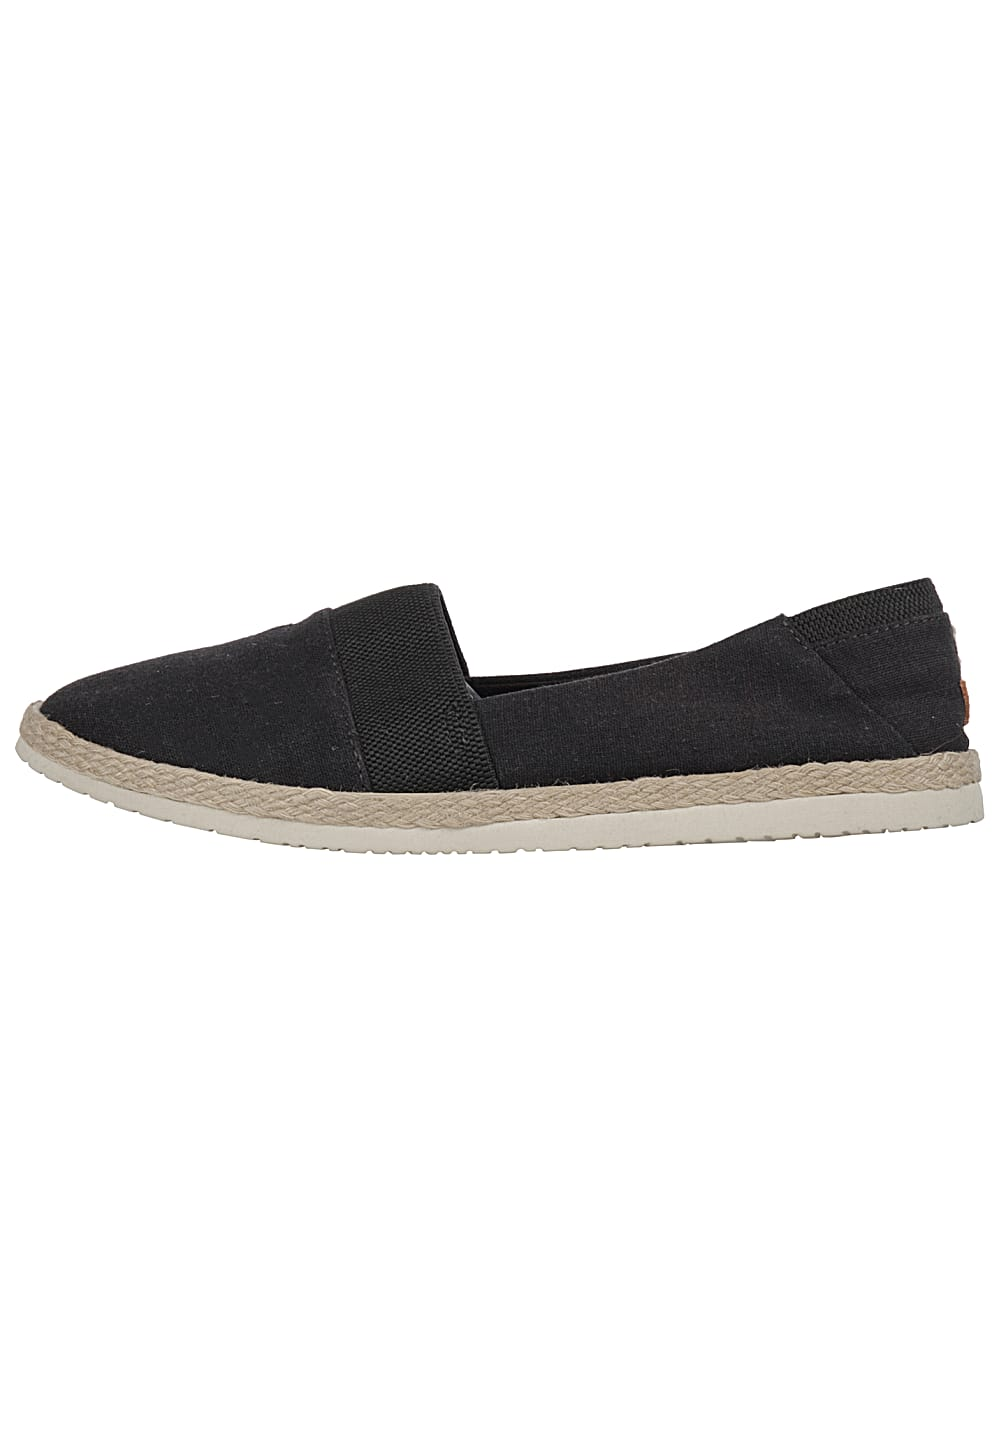 half off 9f97c 9c849 Reef Rose ES - Slip Ons für Damen - Schwarz - Planet Sports